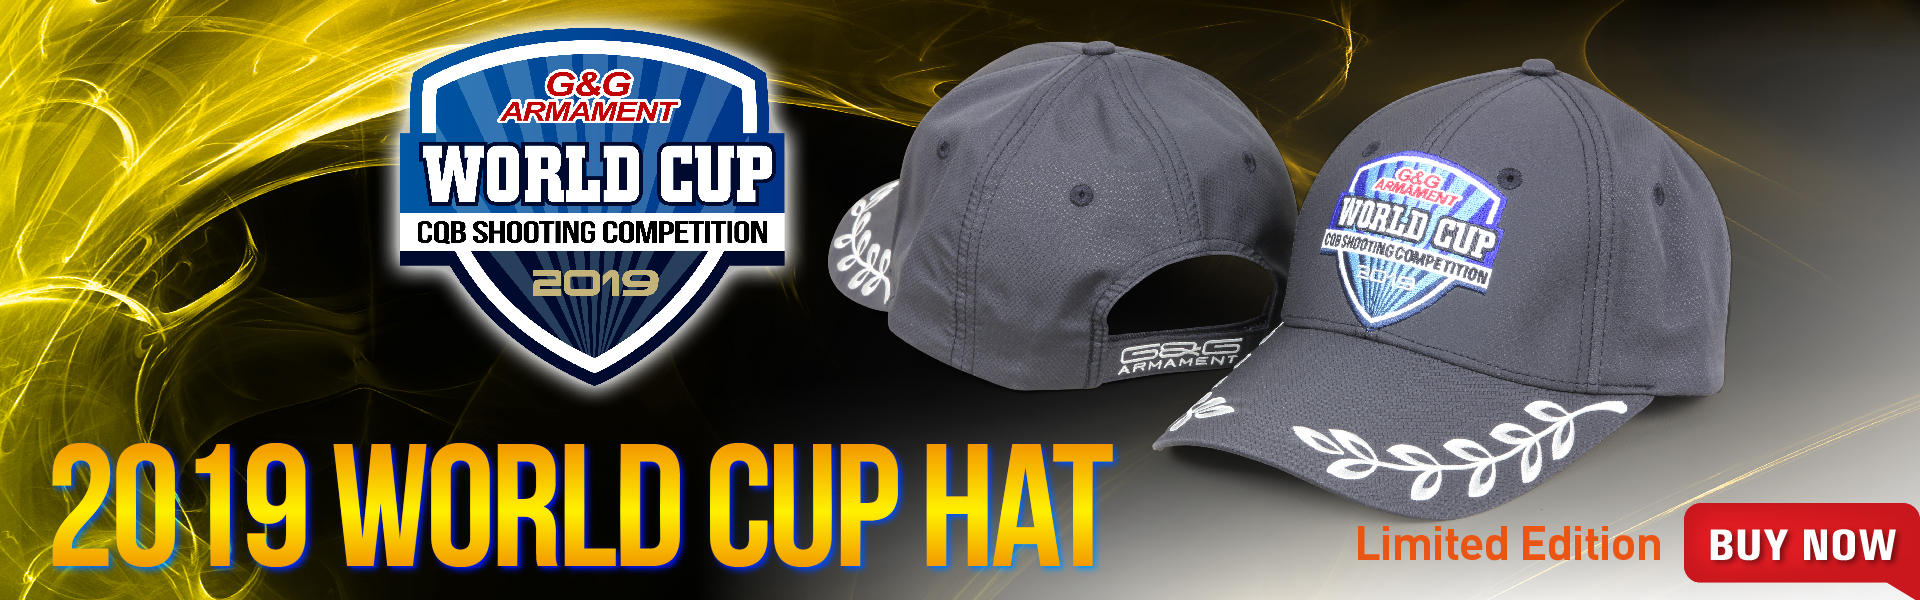 World Cup Hat